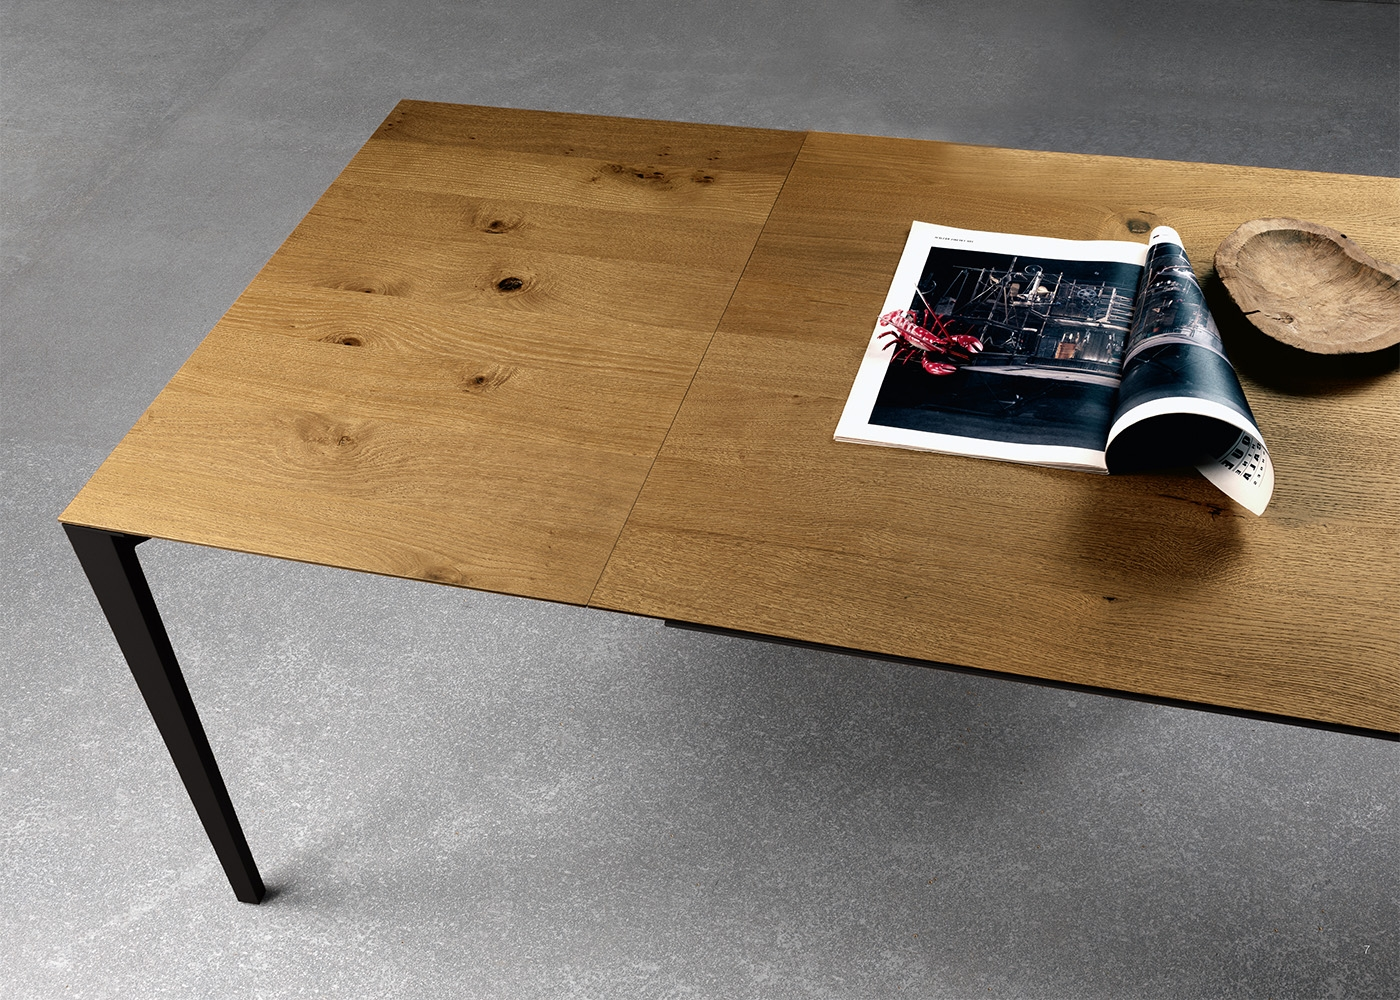 Table de repas en ch ne ou noyer au design sobre et for Table de salle a manger 220 cm